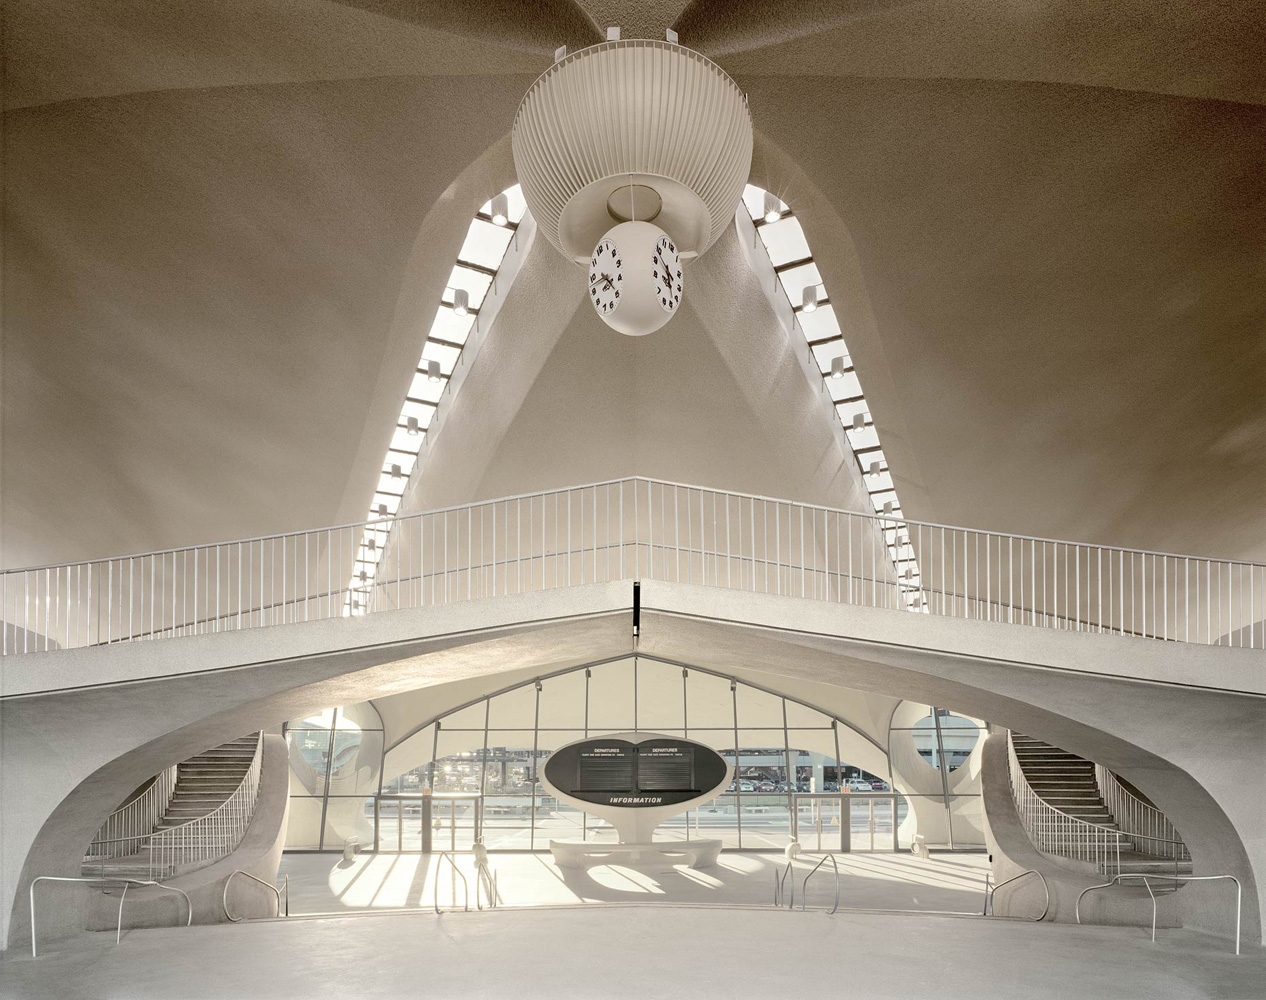 TWA Terminal No. 3, JFK International Airport, Queens, New York,  2005-2007, by David Leventi. Dibond print of the interior architectural details.